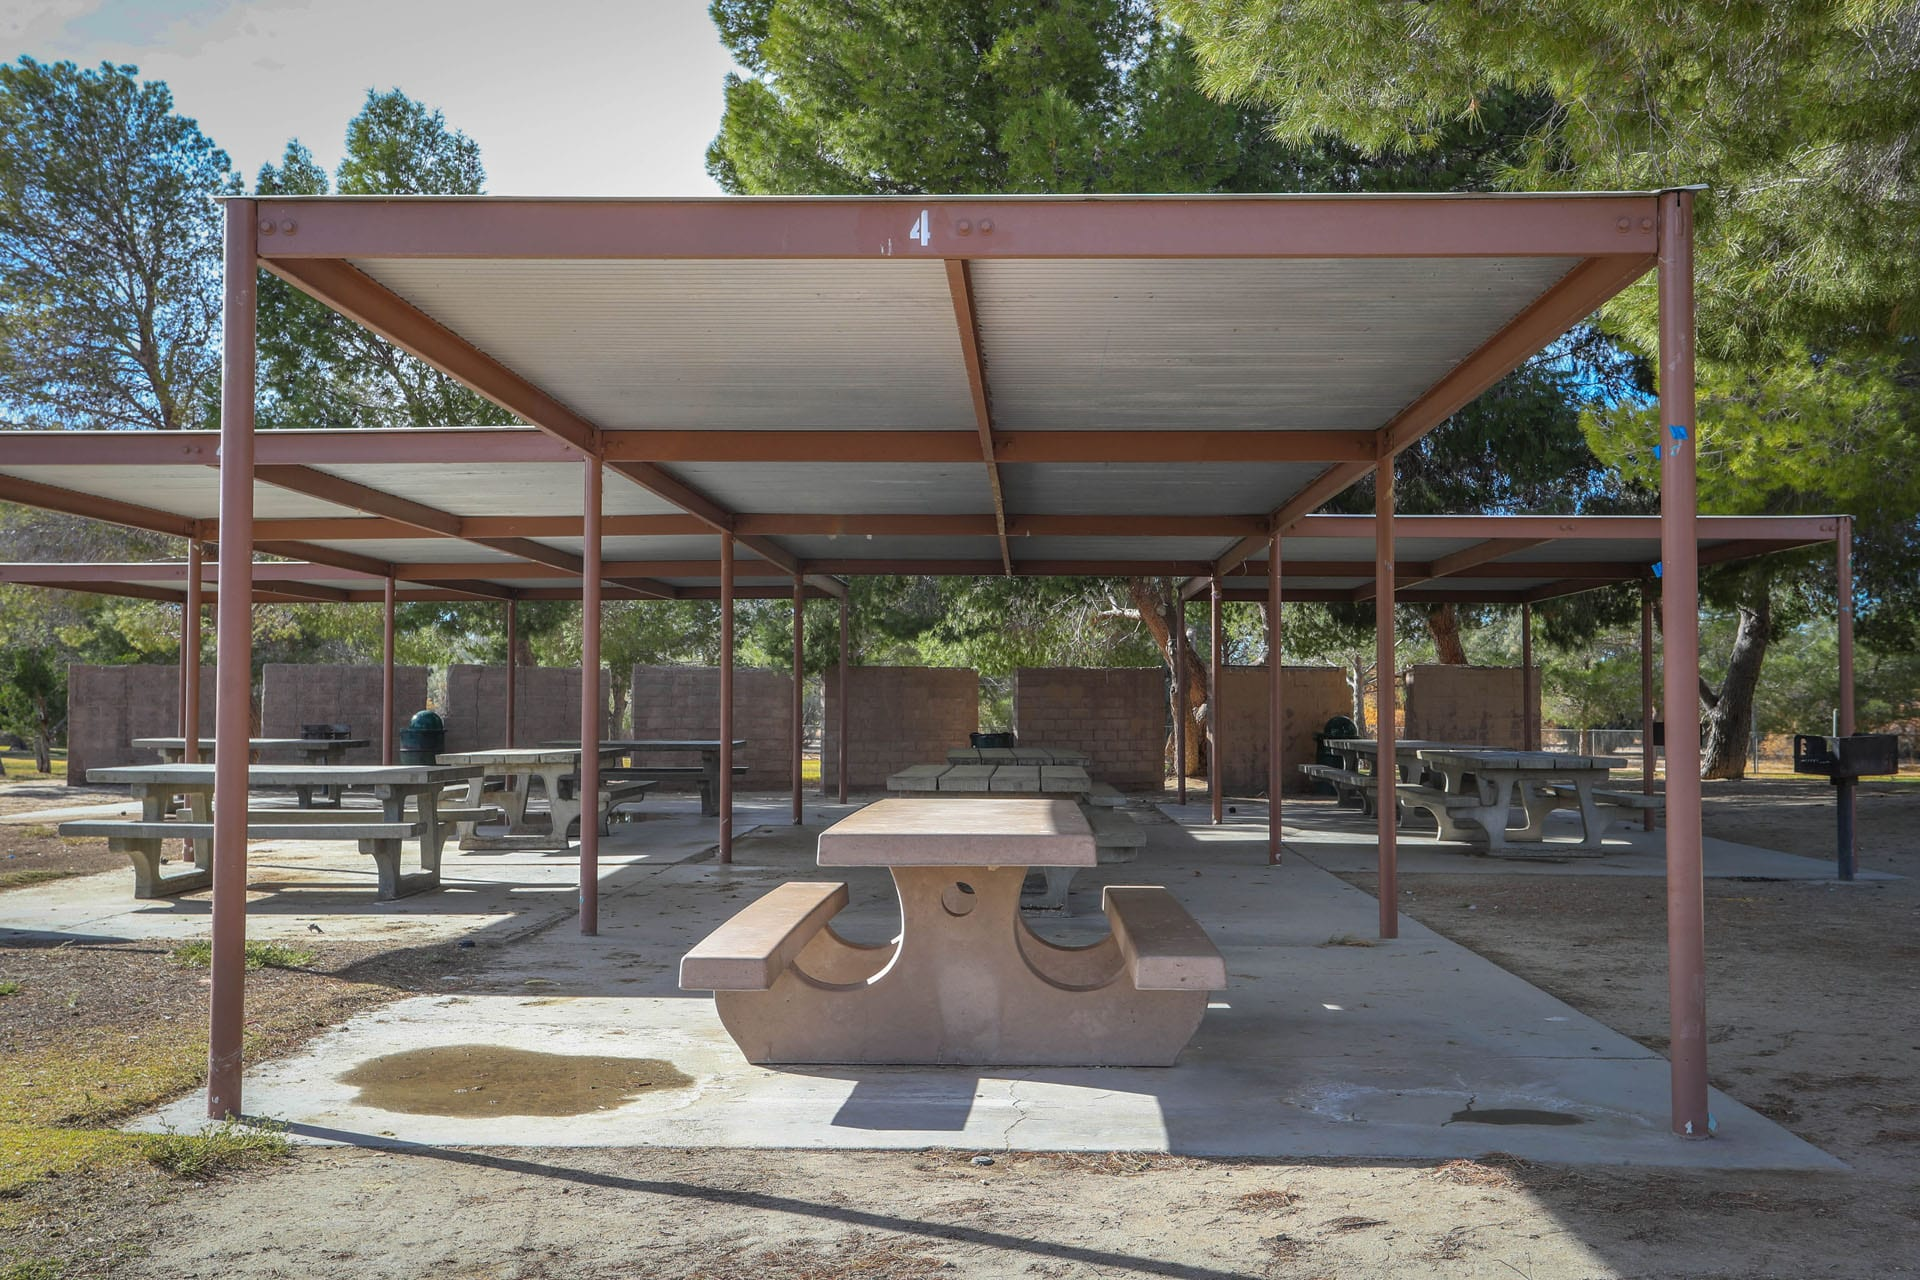 Adobe picnic tables covered by an awning